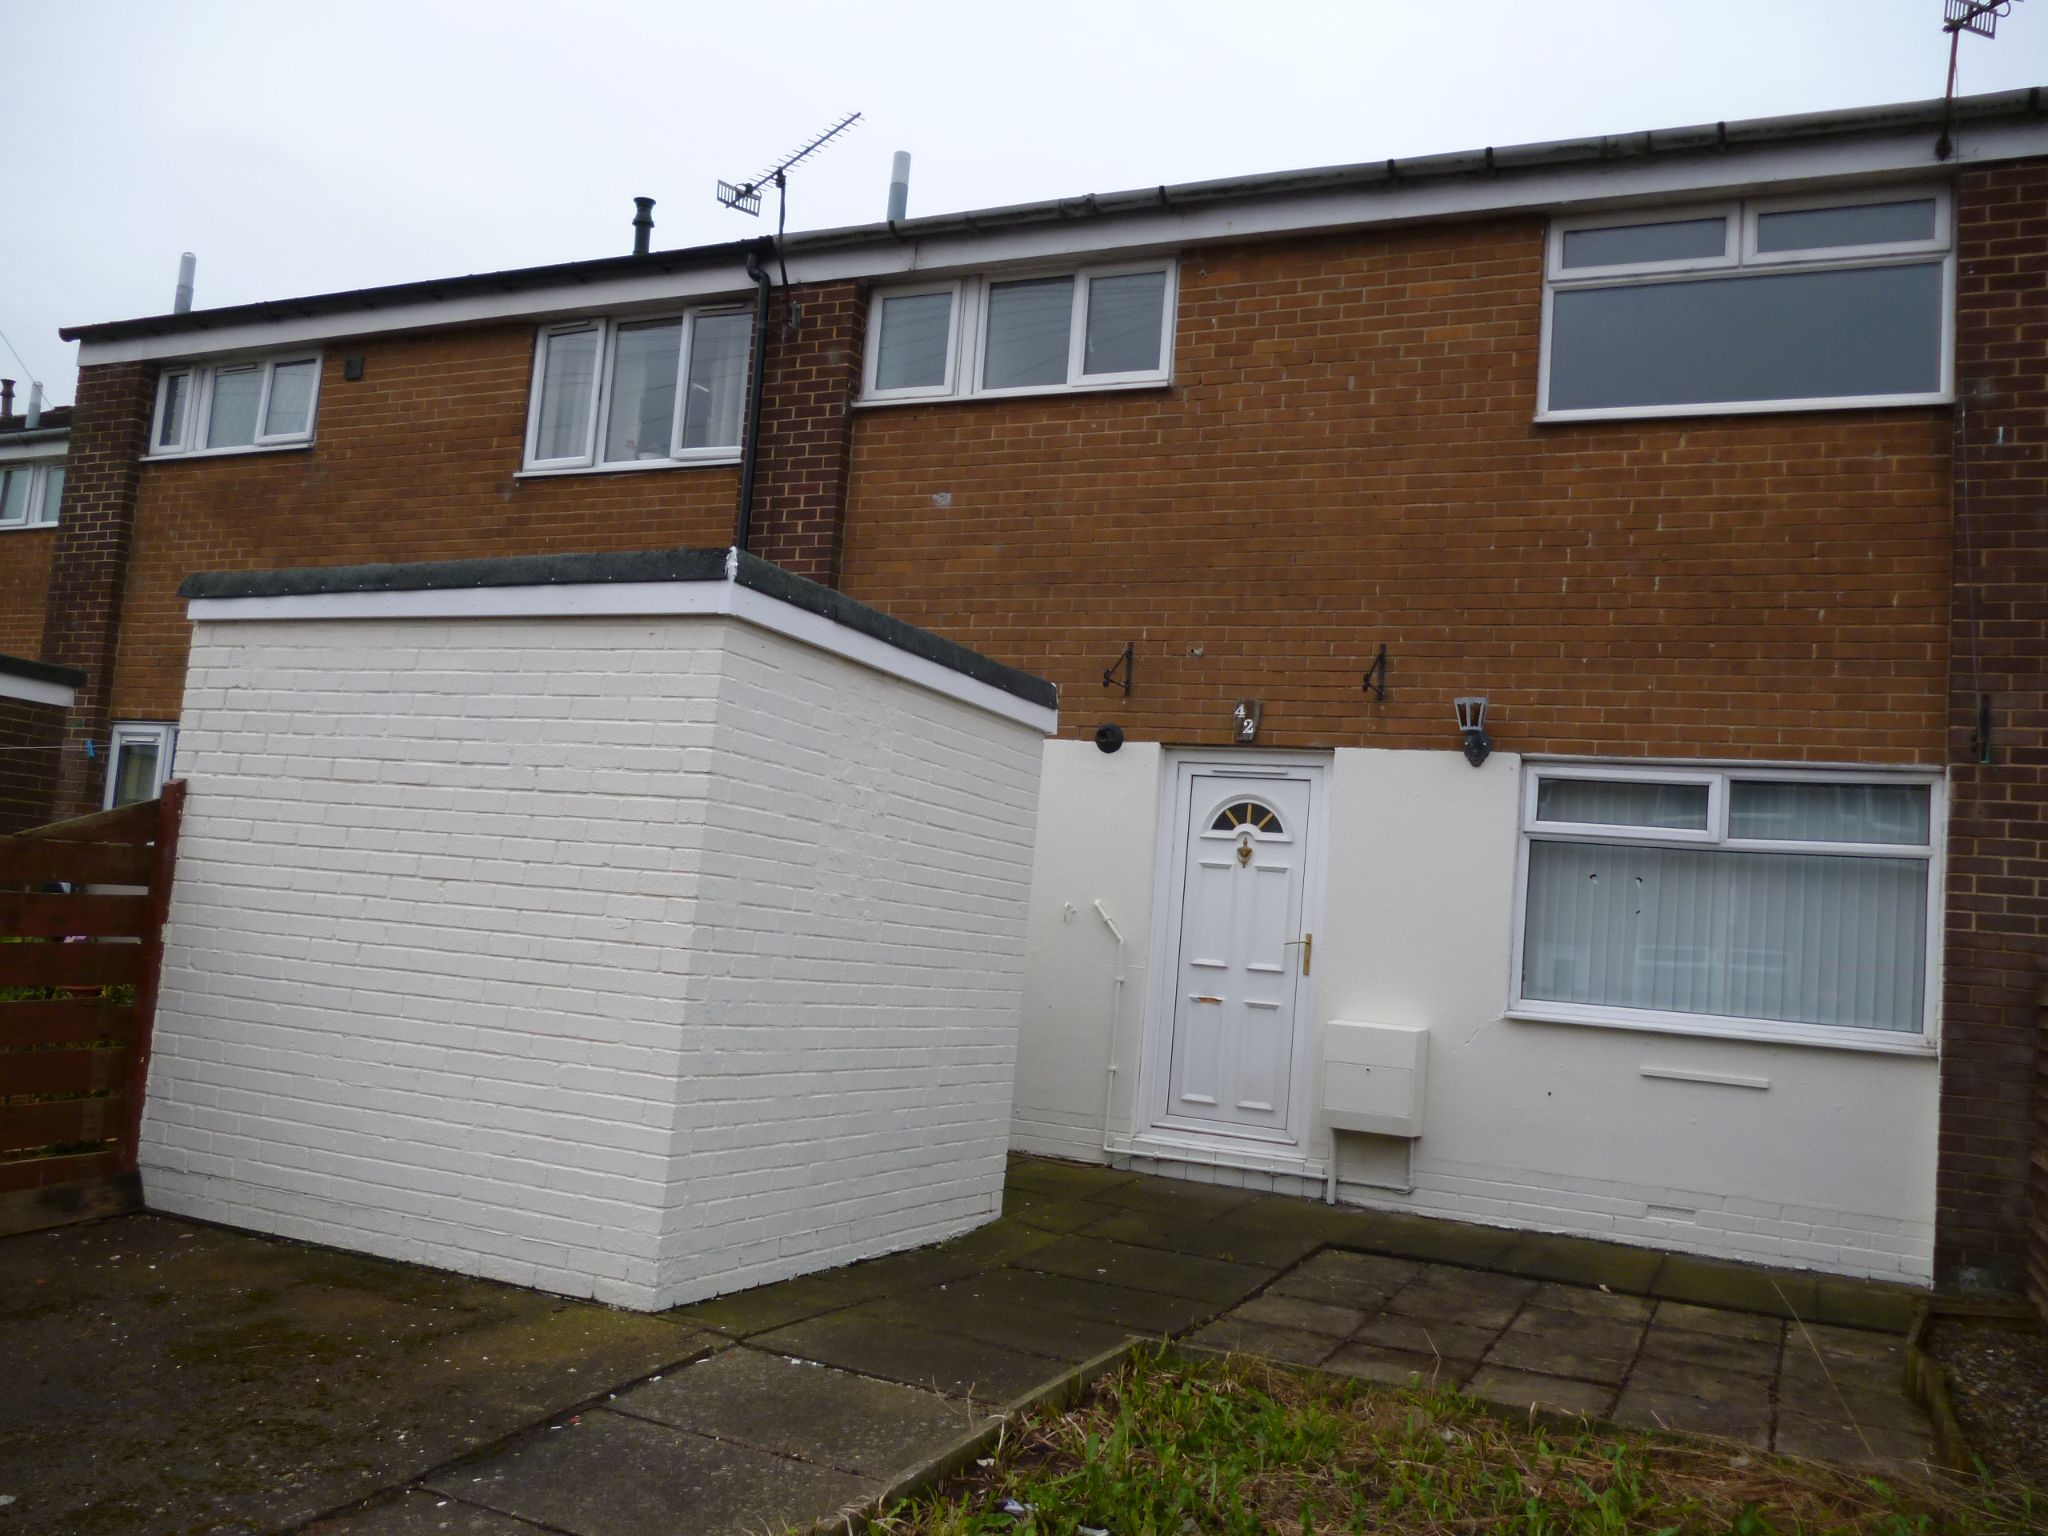 2 bedroom mid terraced house Sale Agreed in Shildon - Photograph 1.